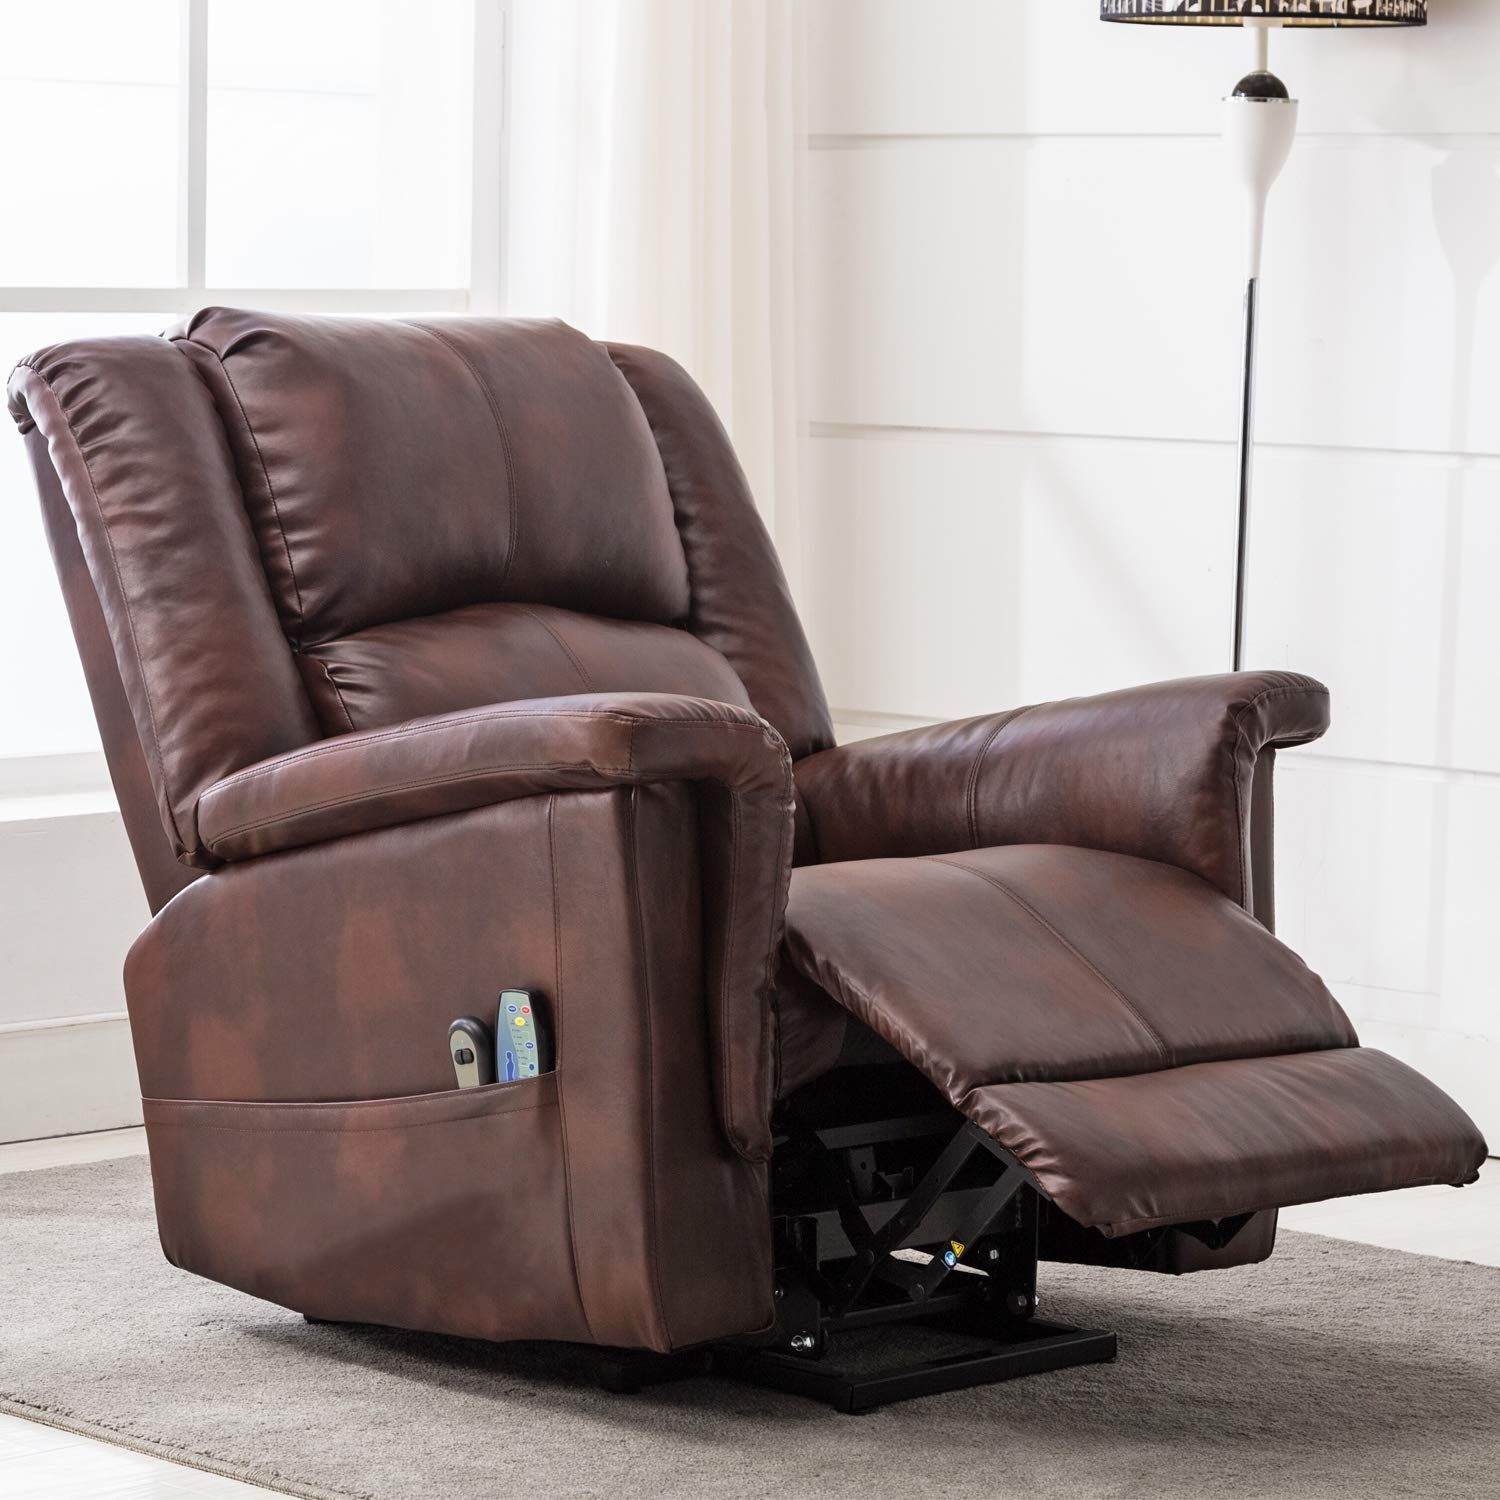 Comhoma power lift recliner chair massage heated electric